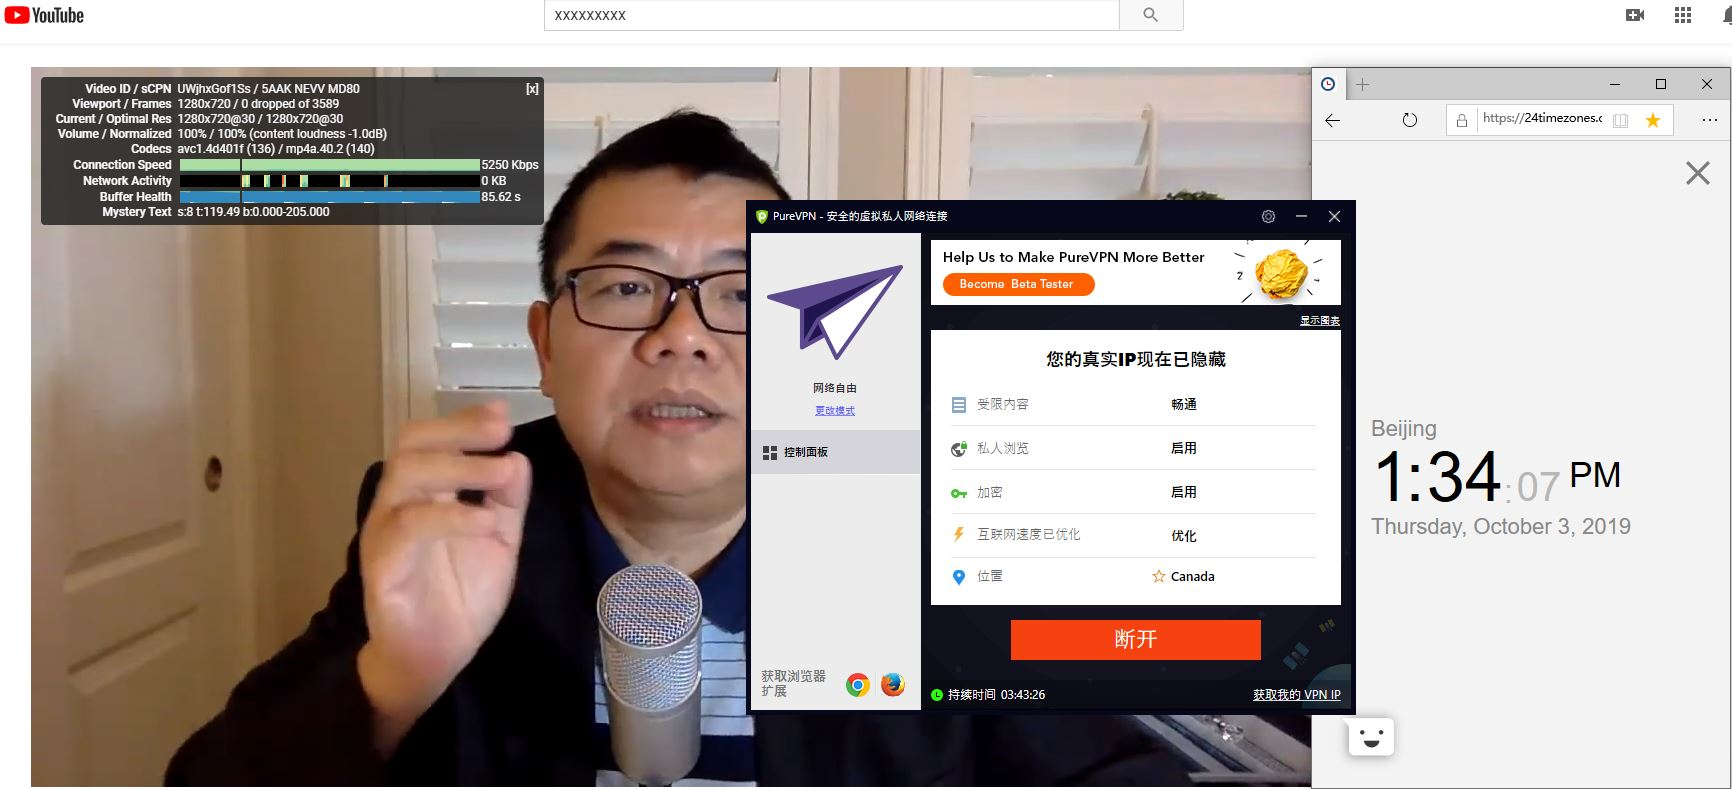 PureVPN Windows Canada 中国VPN翻墙 科学上网 YouTube测速 20191003